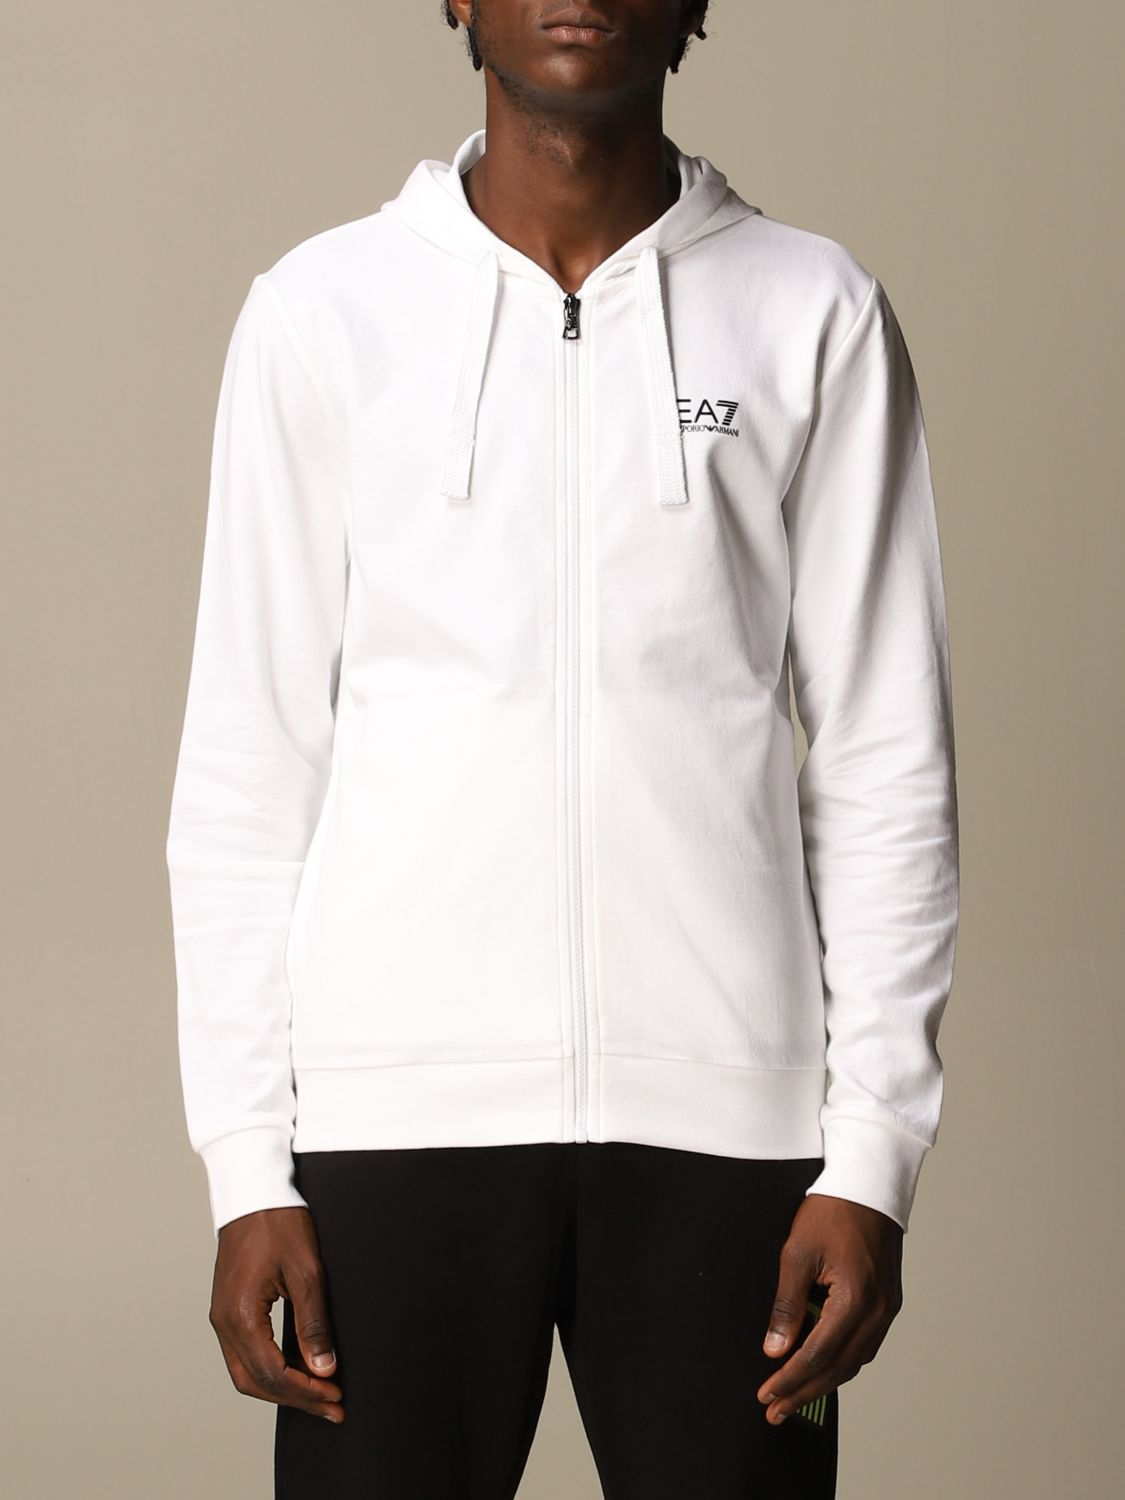 Sweatshirt Ea7: Sweatshirt men Ea7 white 1